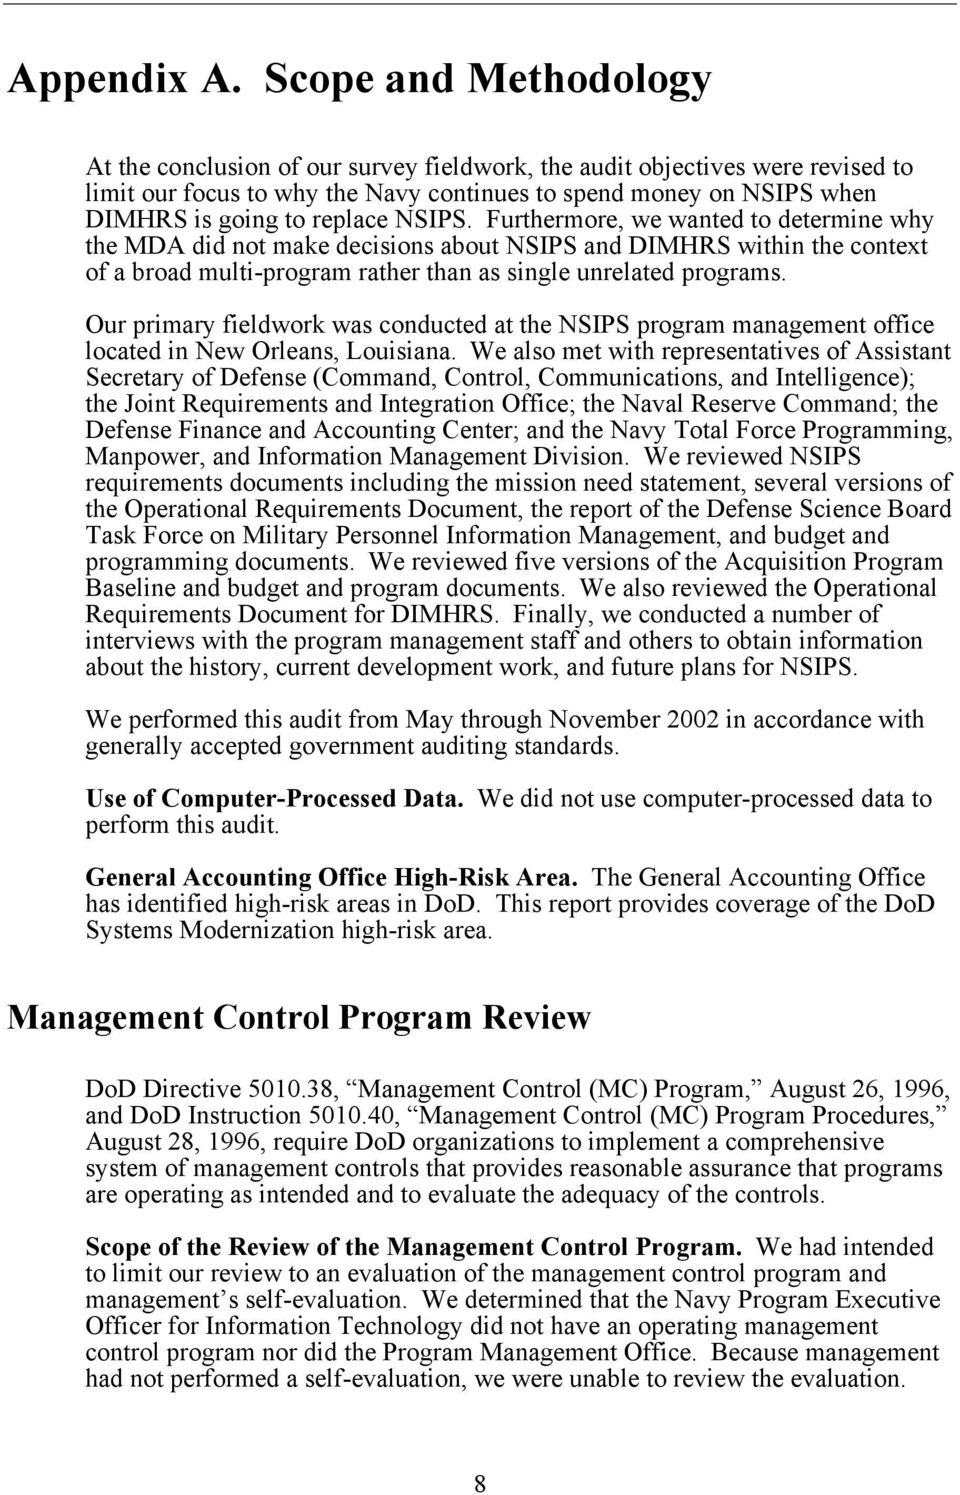 NSIPS. Furthermore, we wanted to determine why the MDA did not make decisions about NSIPS and DIMHRS within the context of a broad multi-program rather than as single unrelated programs.